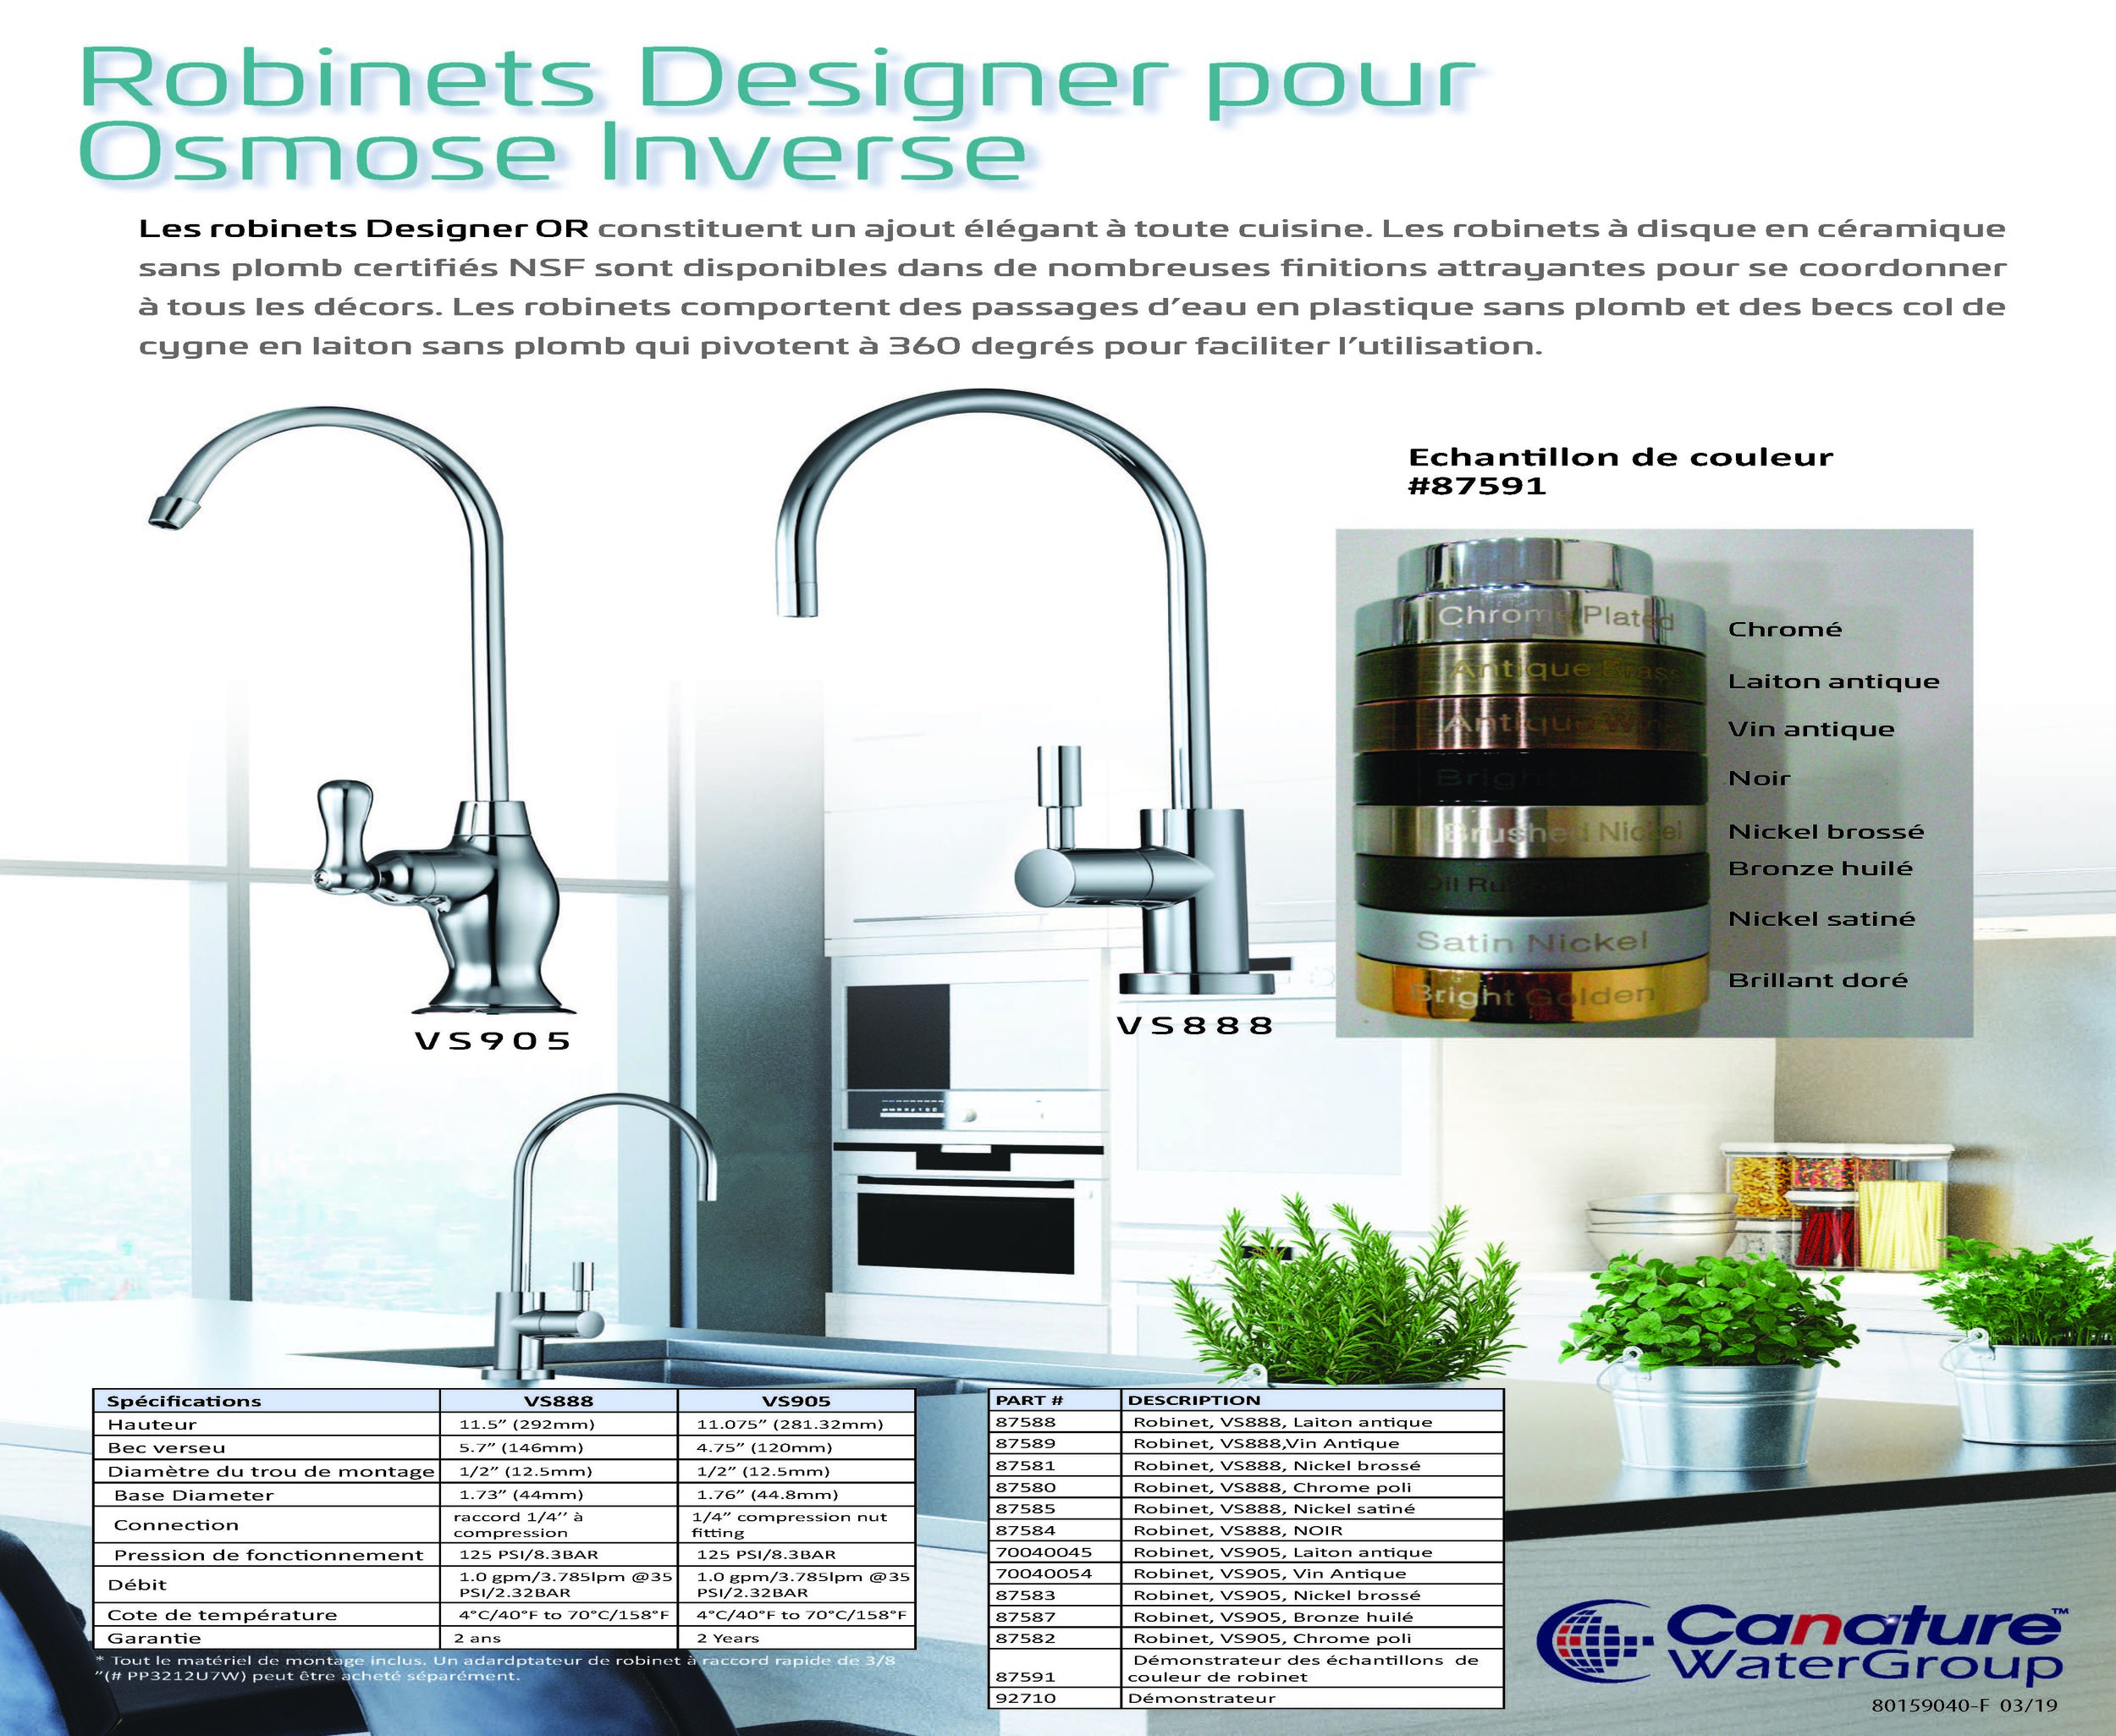 Robinets Designer pour Osmose Inverse